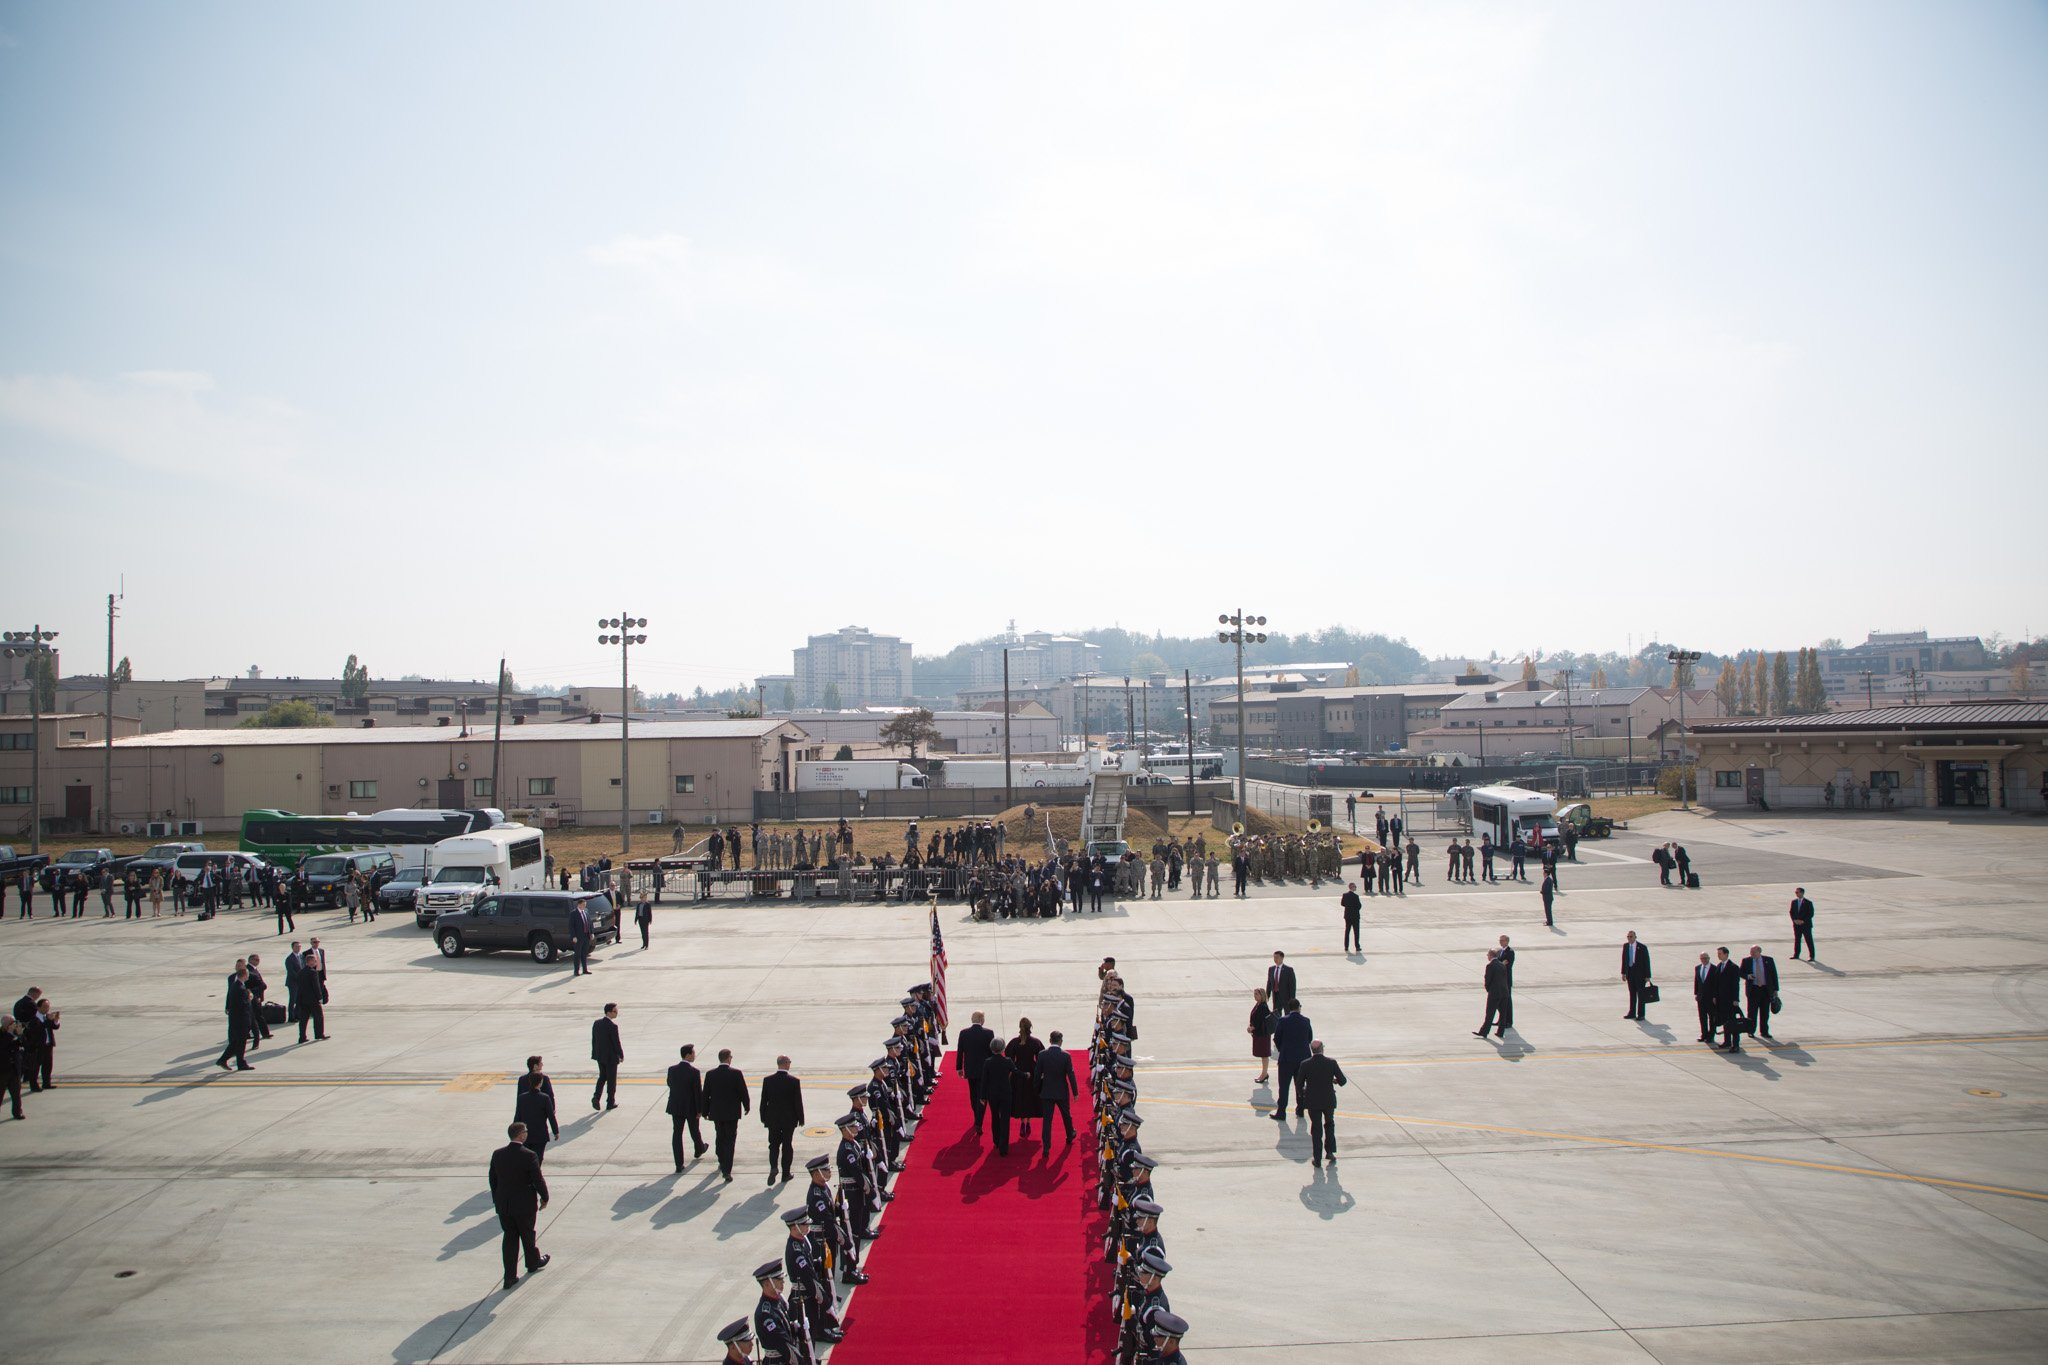 President Trump and the First Lady have arrived in South Korea: https://t.co/2EdlNGZPYw #POTUSinAsia https://t.co/K9UDlqfLAo